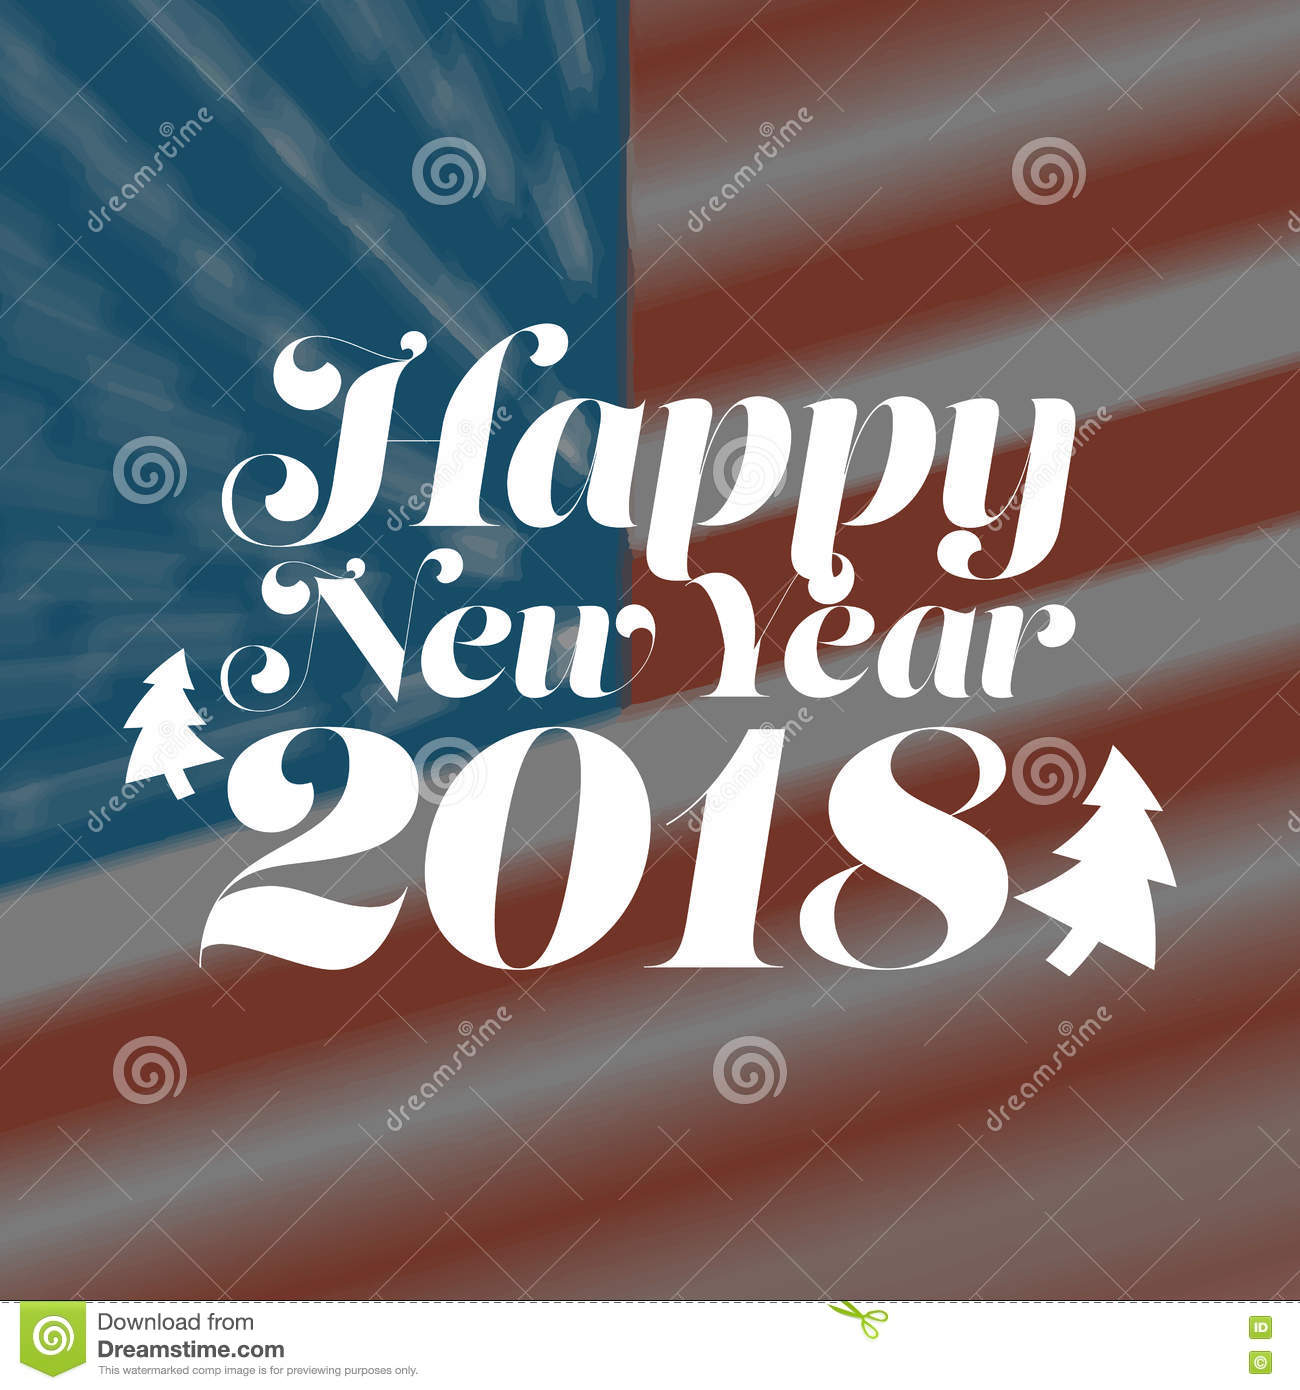 happy new year 2018 with usa flag background